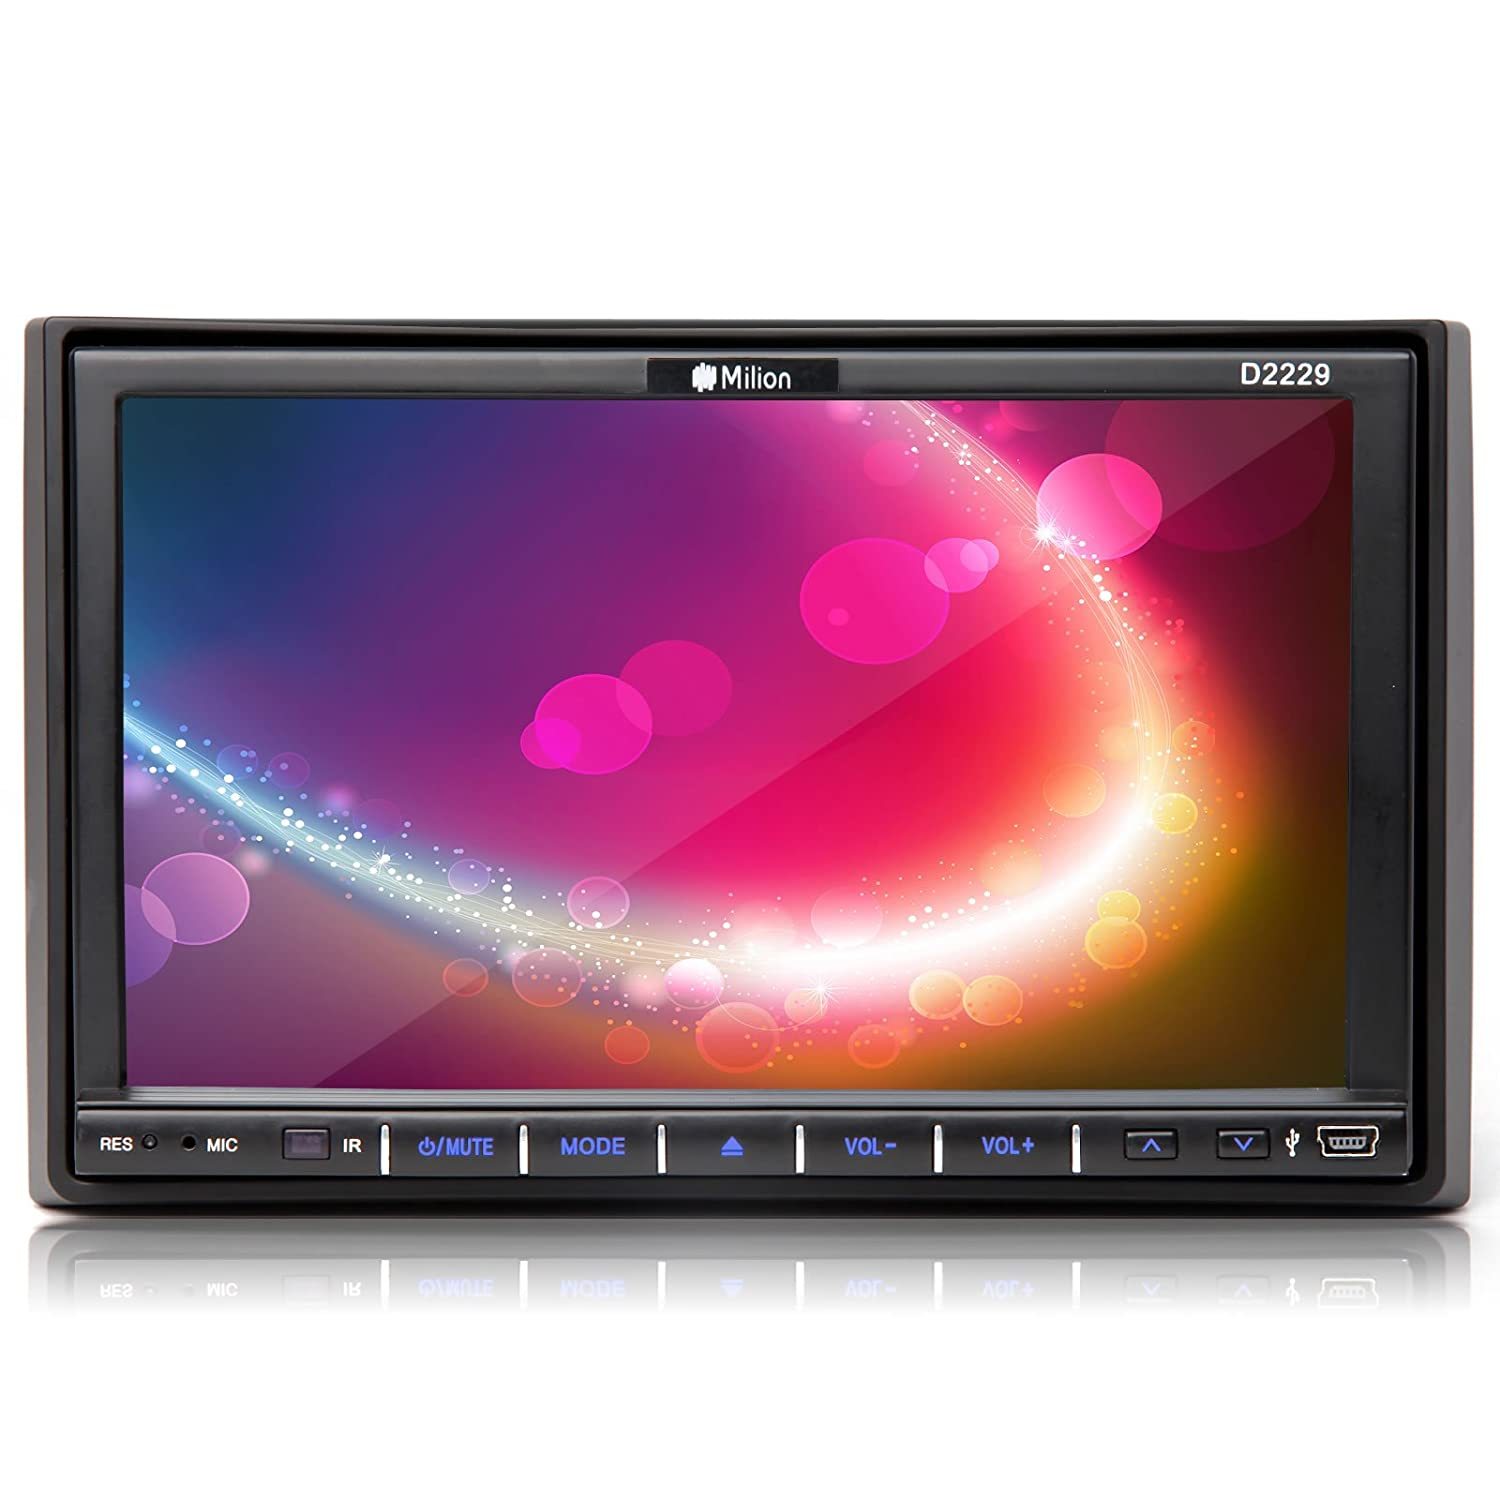 714hAicPxFL._SL1500_ amazon com milion 7 inch double din in dash car head unit monitor  at crackthecode.co